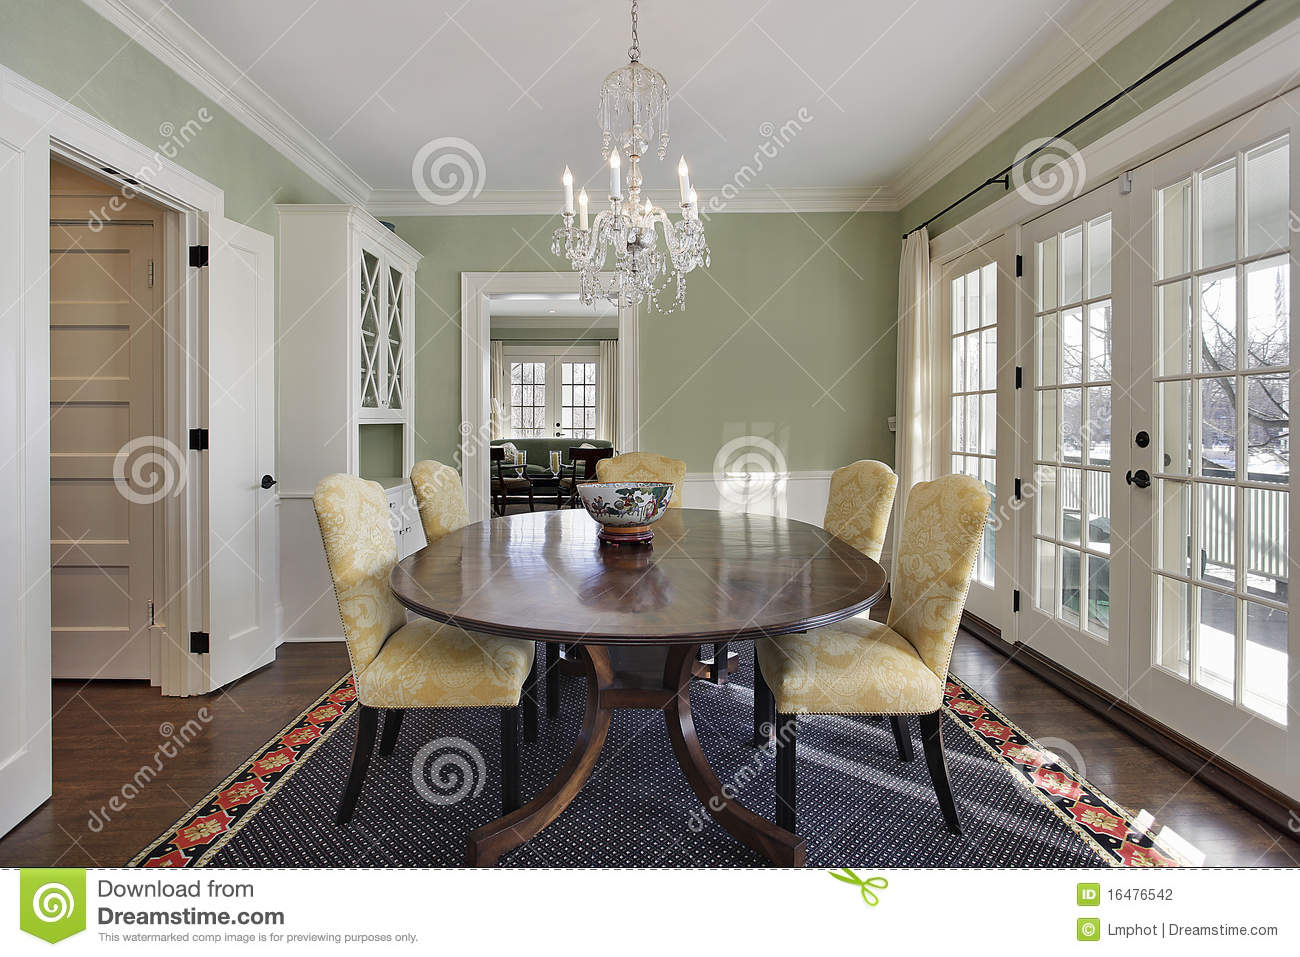 dining room with green walls stock images - image: 9331444